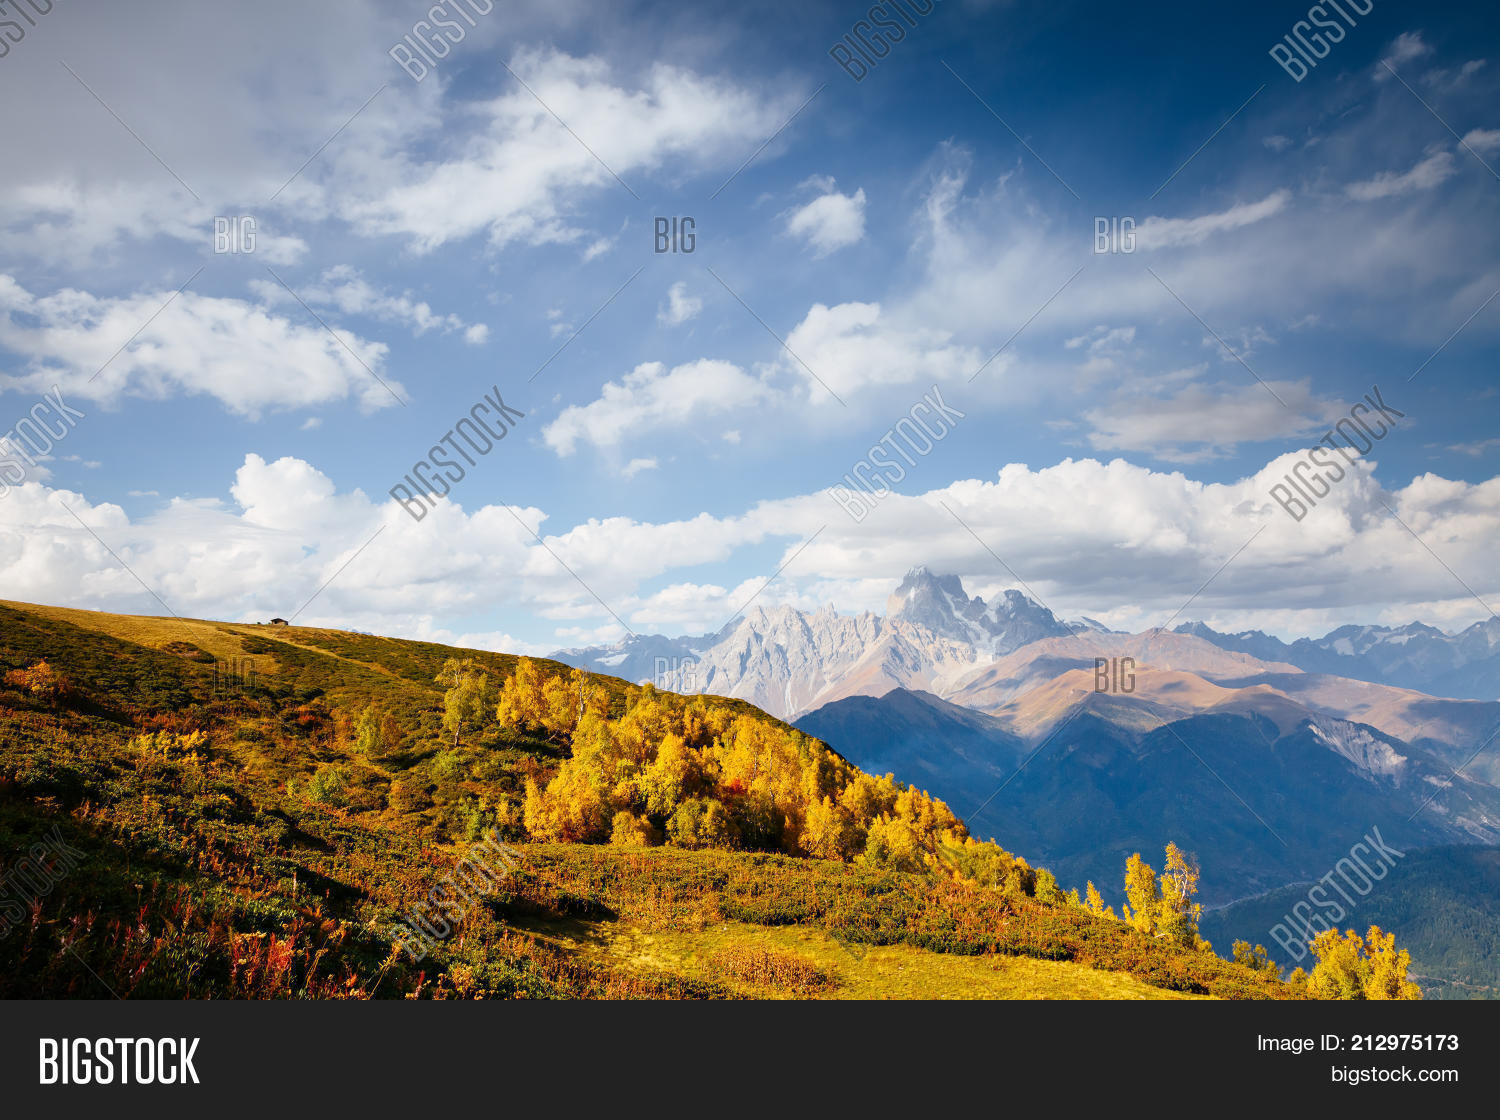 Alpine meadows in the sunny beams. Location Zemo Svaneti, Georgia country, Europe. Main Caucasian ridge. Scenic image of wild area. Explore the beauty of earth. Adventure and lifestyle hiking concept